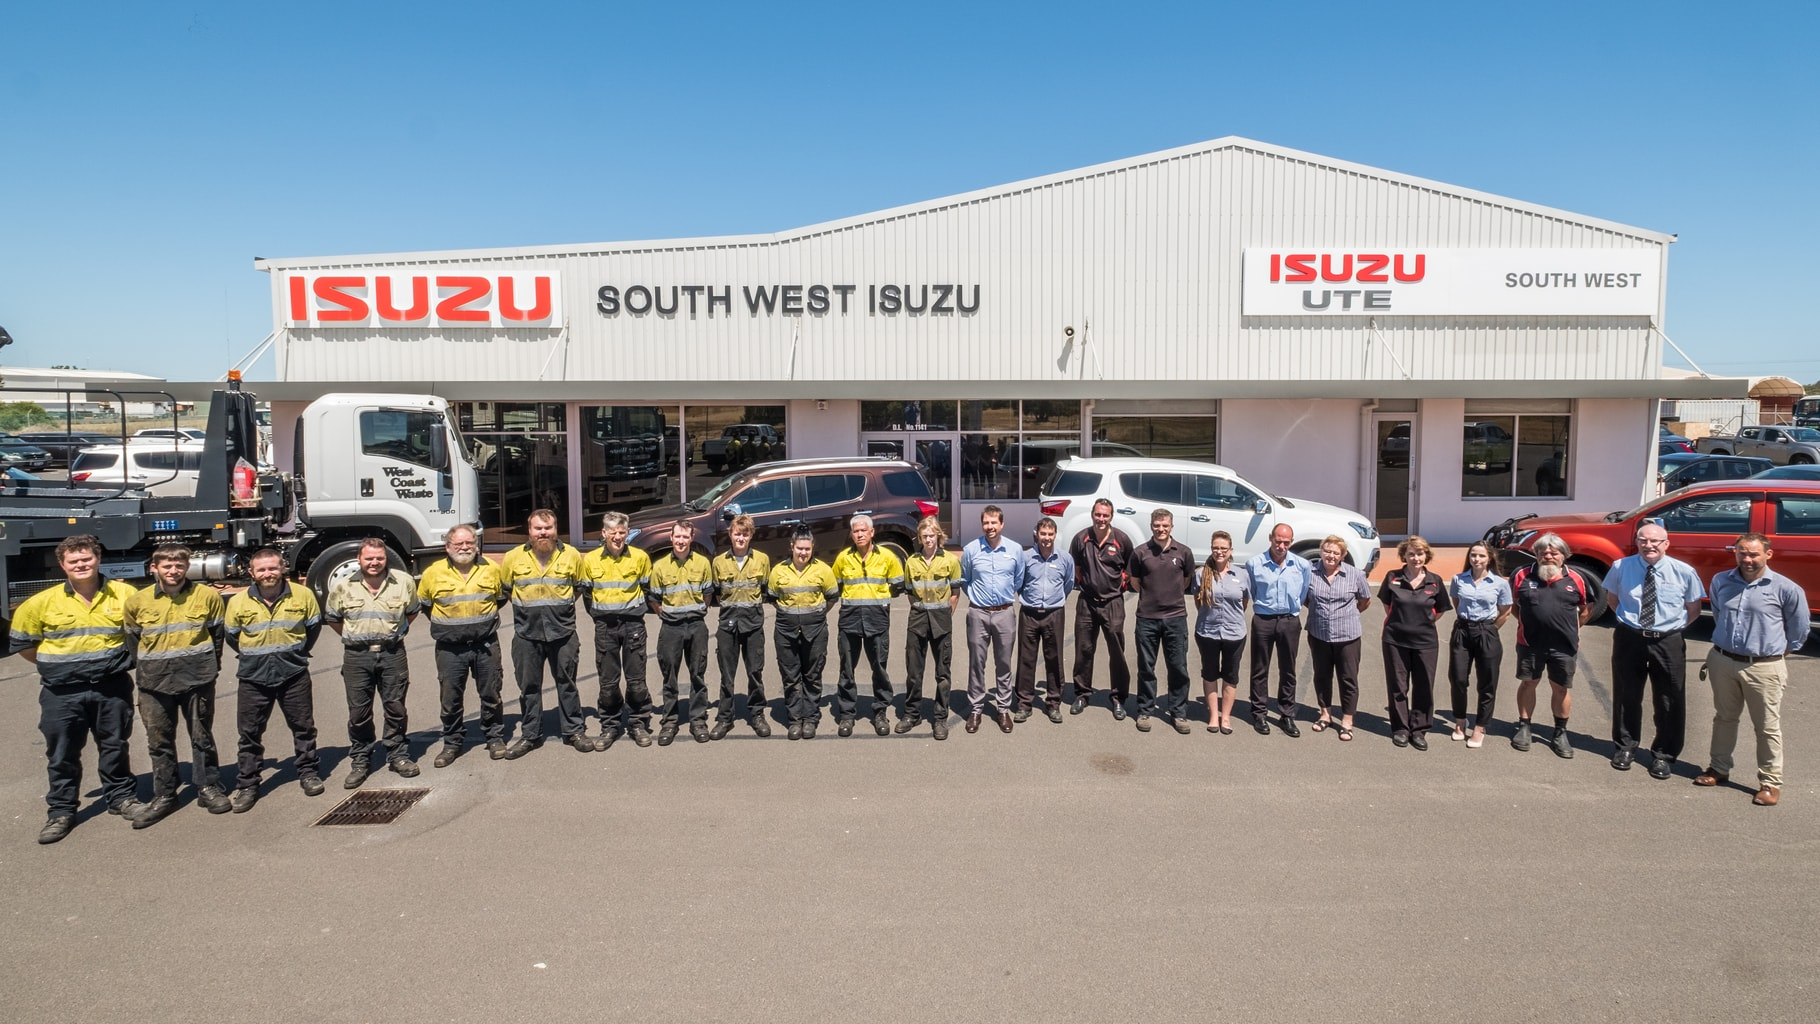 As The Specialist Isuzu Truck And Ute Sales And Service Team, We Are Very  Proud To Have Won The ISUZU Dealer Excellence Awards For Five Years Running.